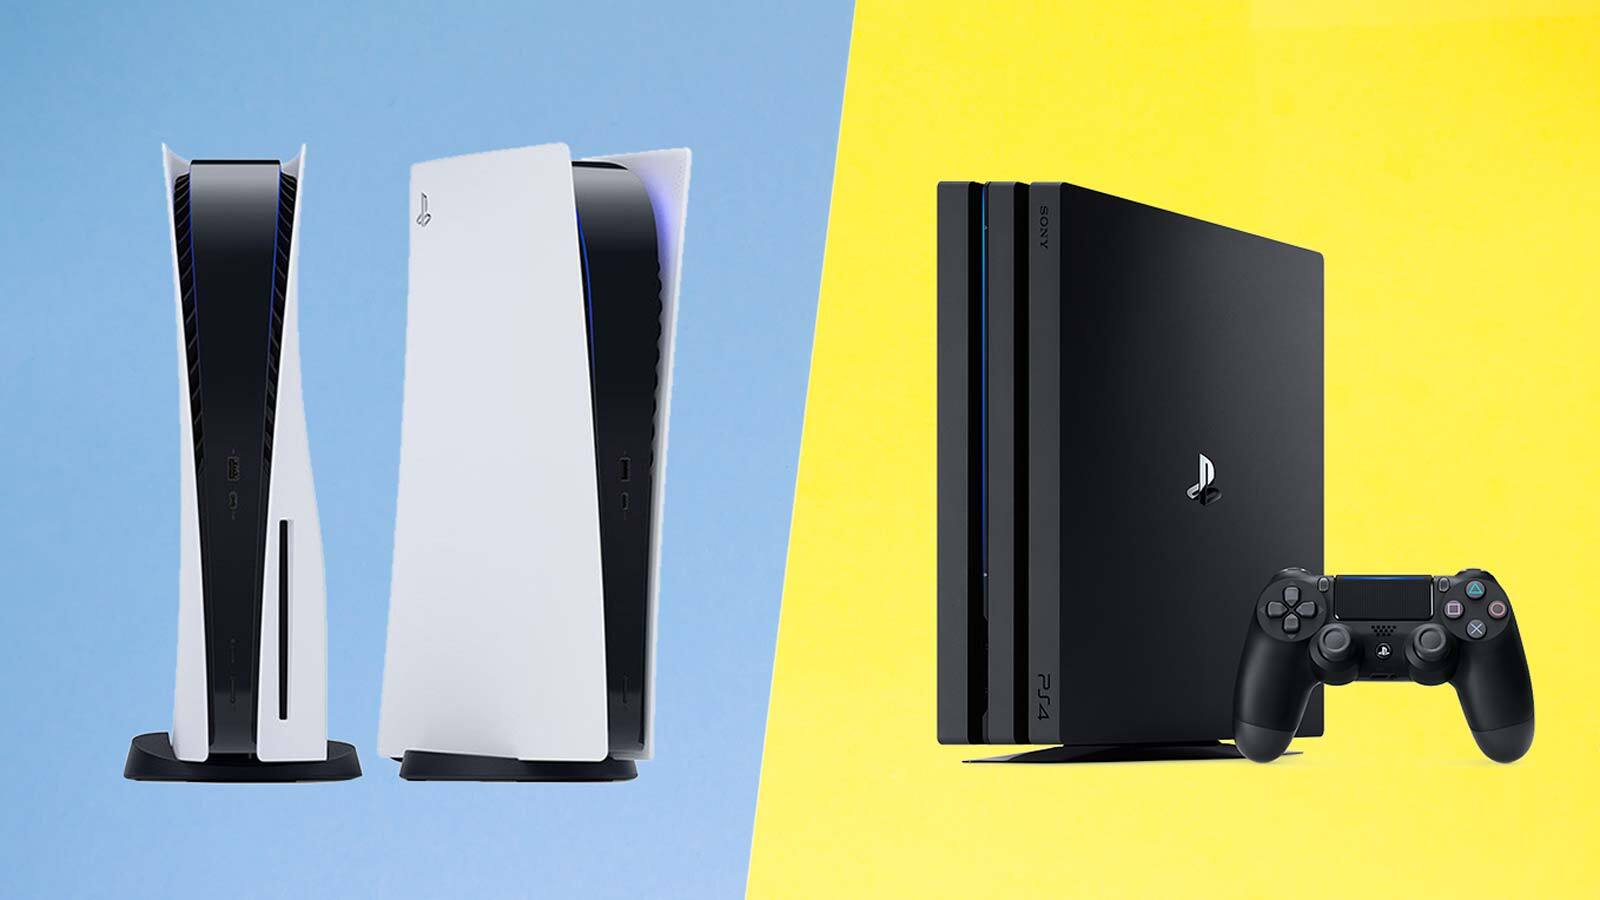 Nfyx5DNUsseaBwoo9bb9C9 - PS4 vs PS5: What are the differences?